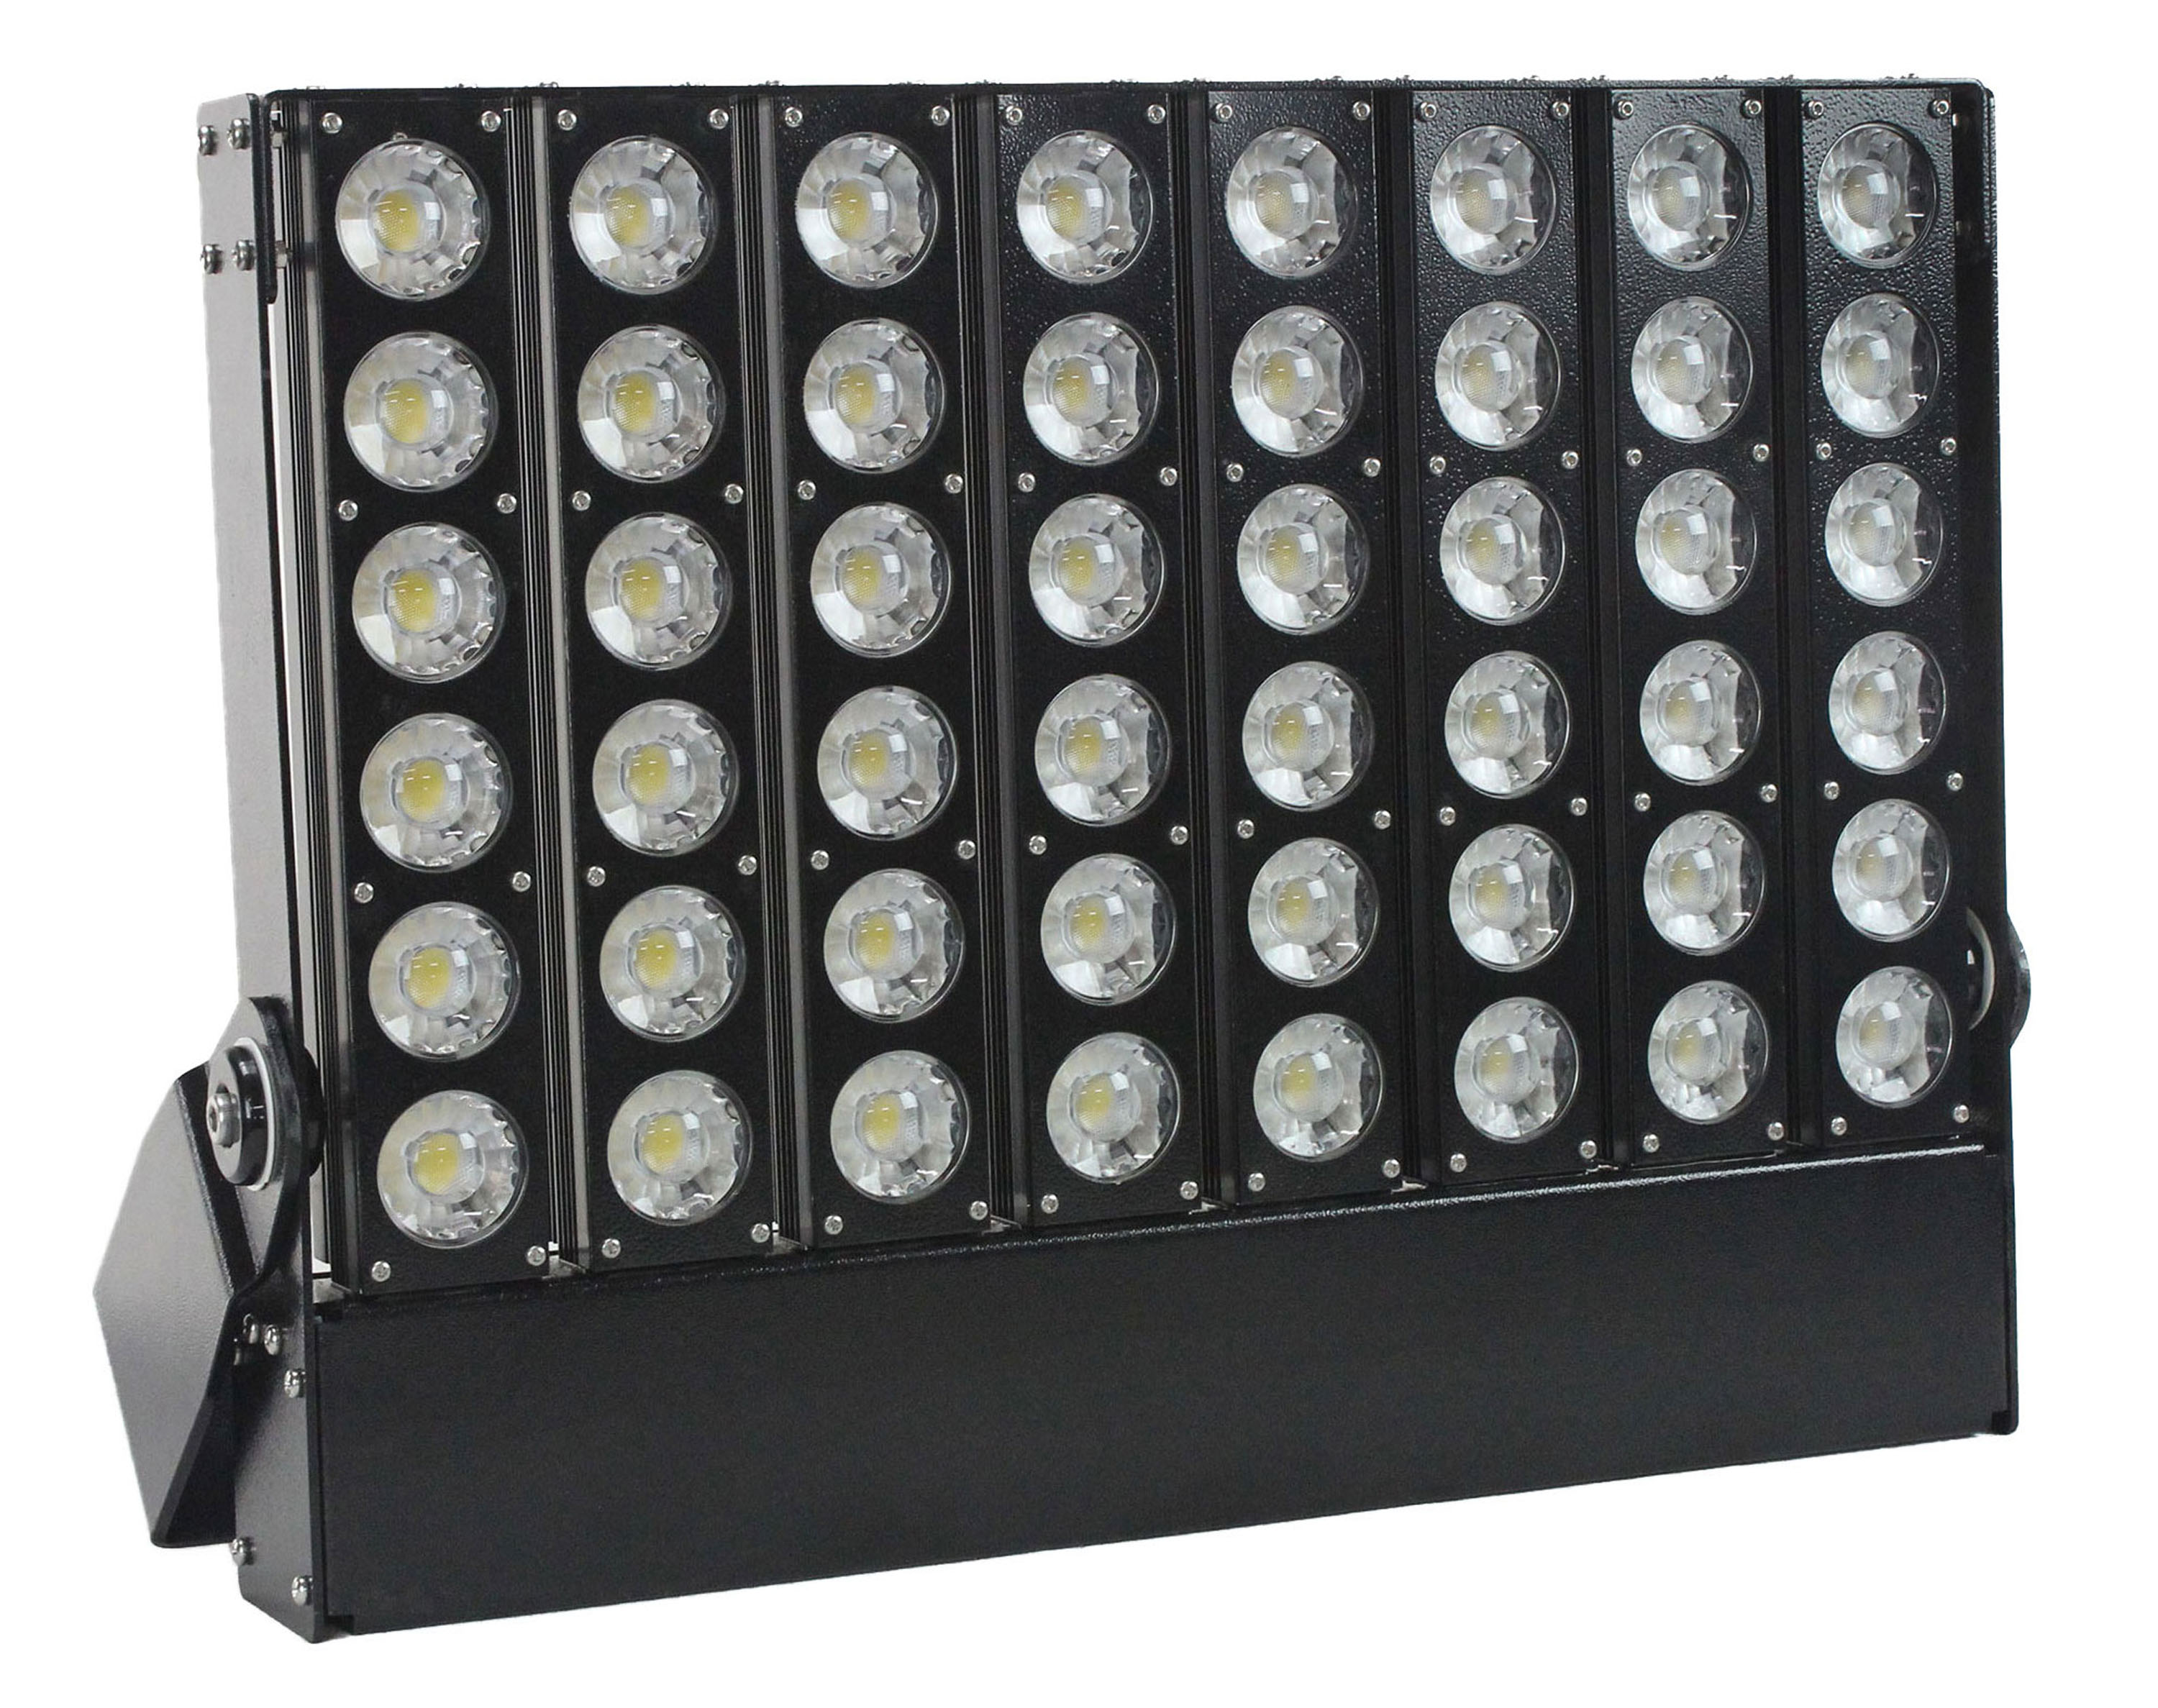 500 Lumen Is Hoeveel Watt 500 Watt High Intensity Led Light For 480v Operation